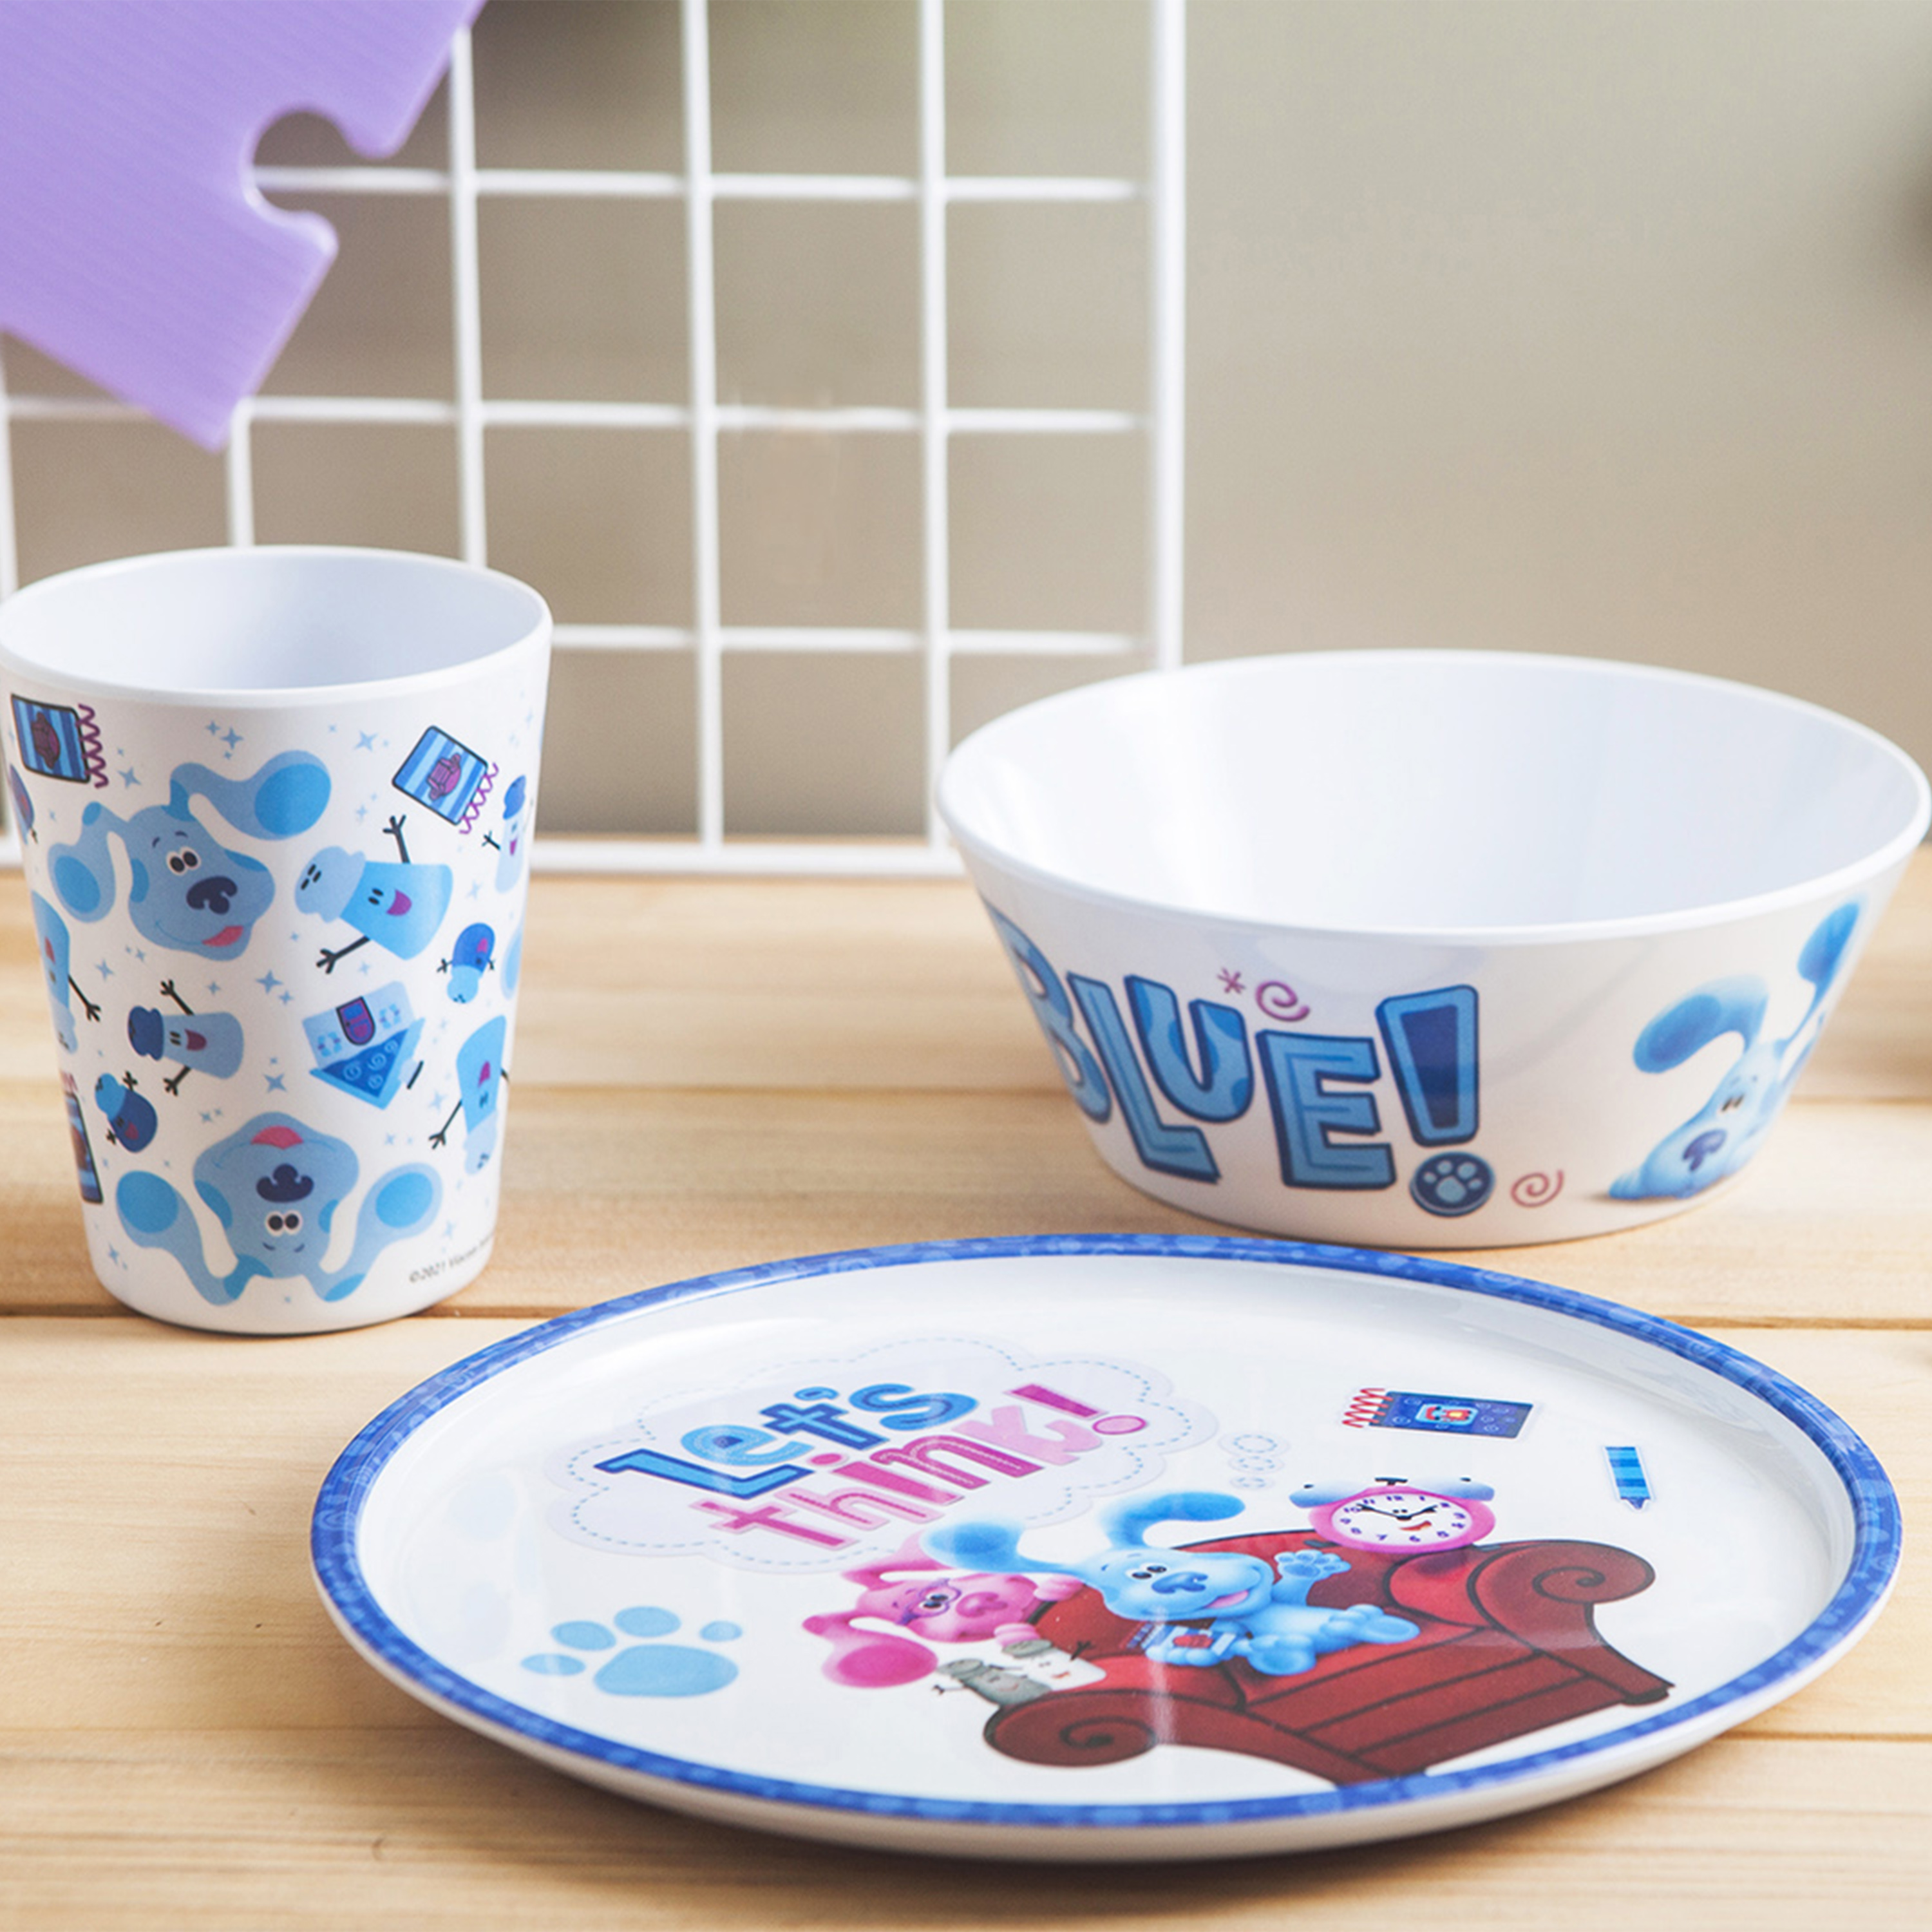 Blues Clues and You Kids Dinner Set, Blue and Friends, 5-piece set slideshow image 10